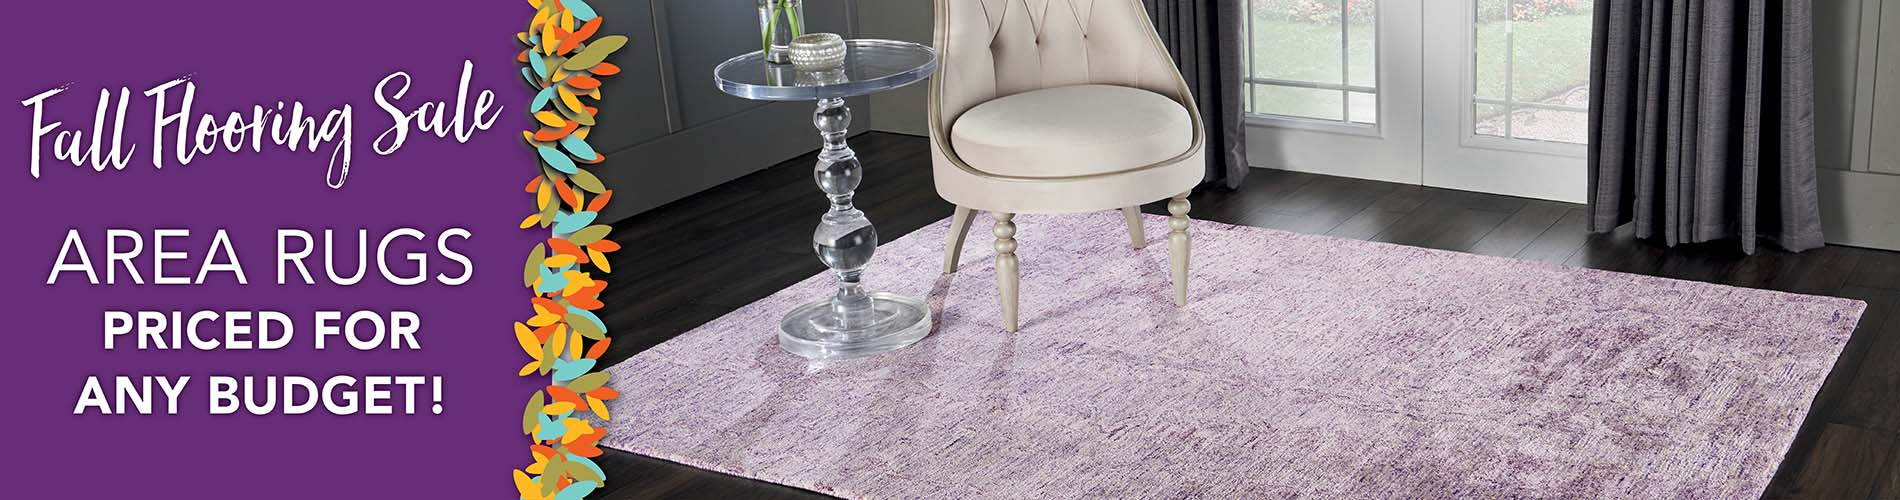 Area rugs priced for any budget!